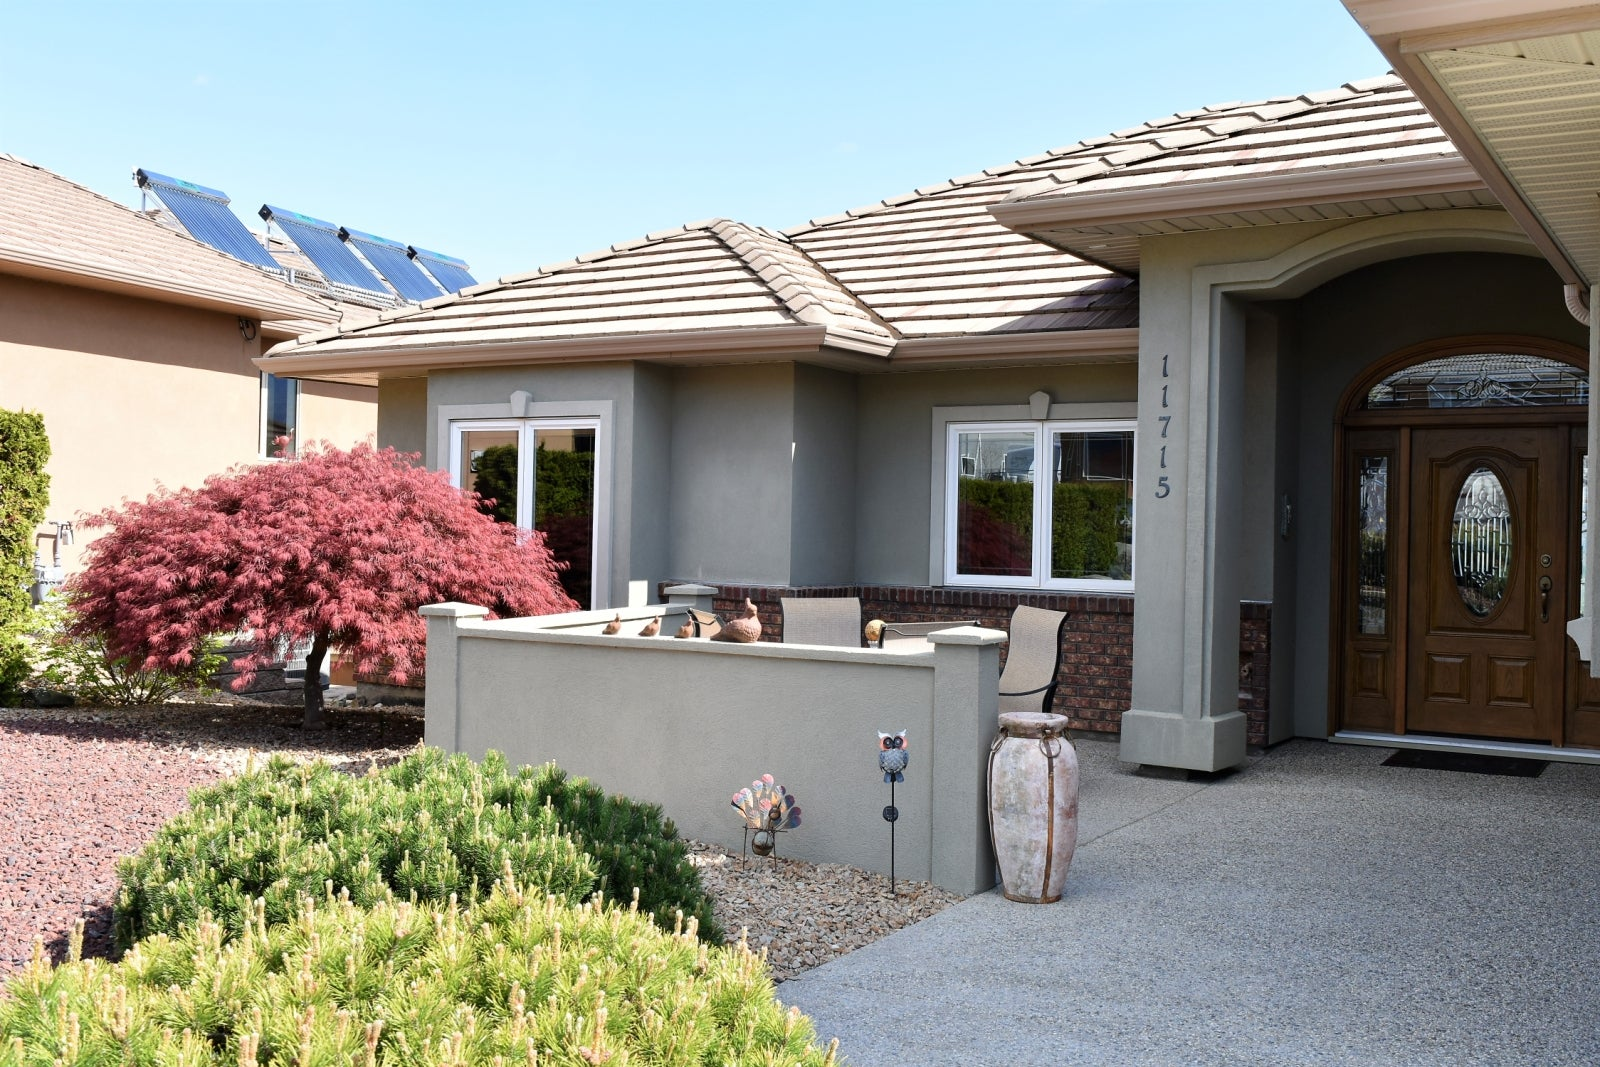 11715 Olympic View Drive - Osoyoos Single Family for sale, 4 Bedrooms (176846) #3